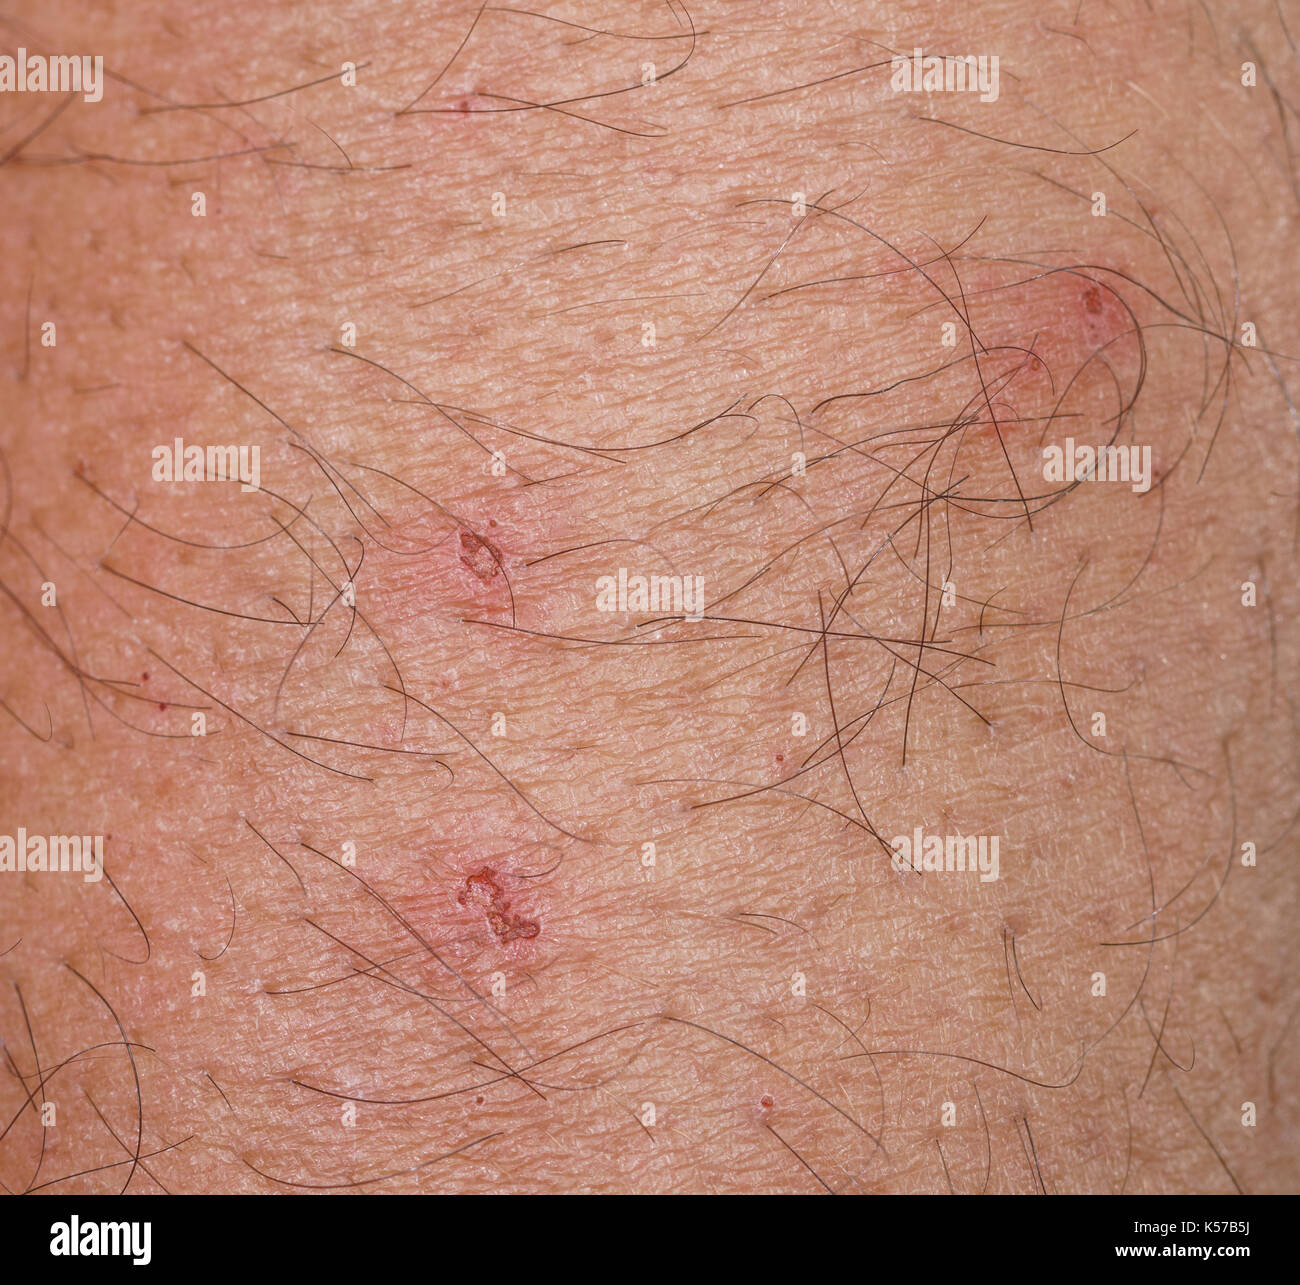 closeup of spot with scab over caucasian skin - Stock Image